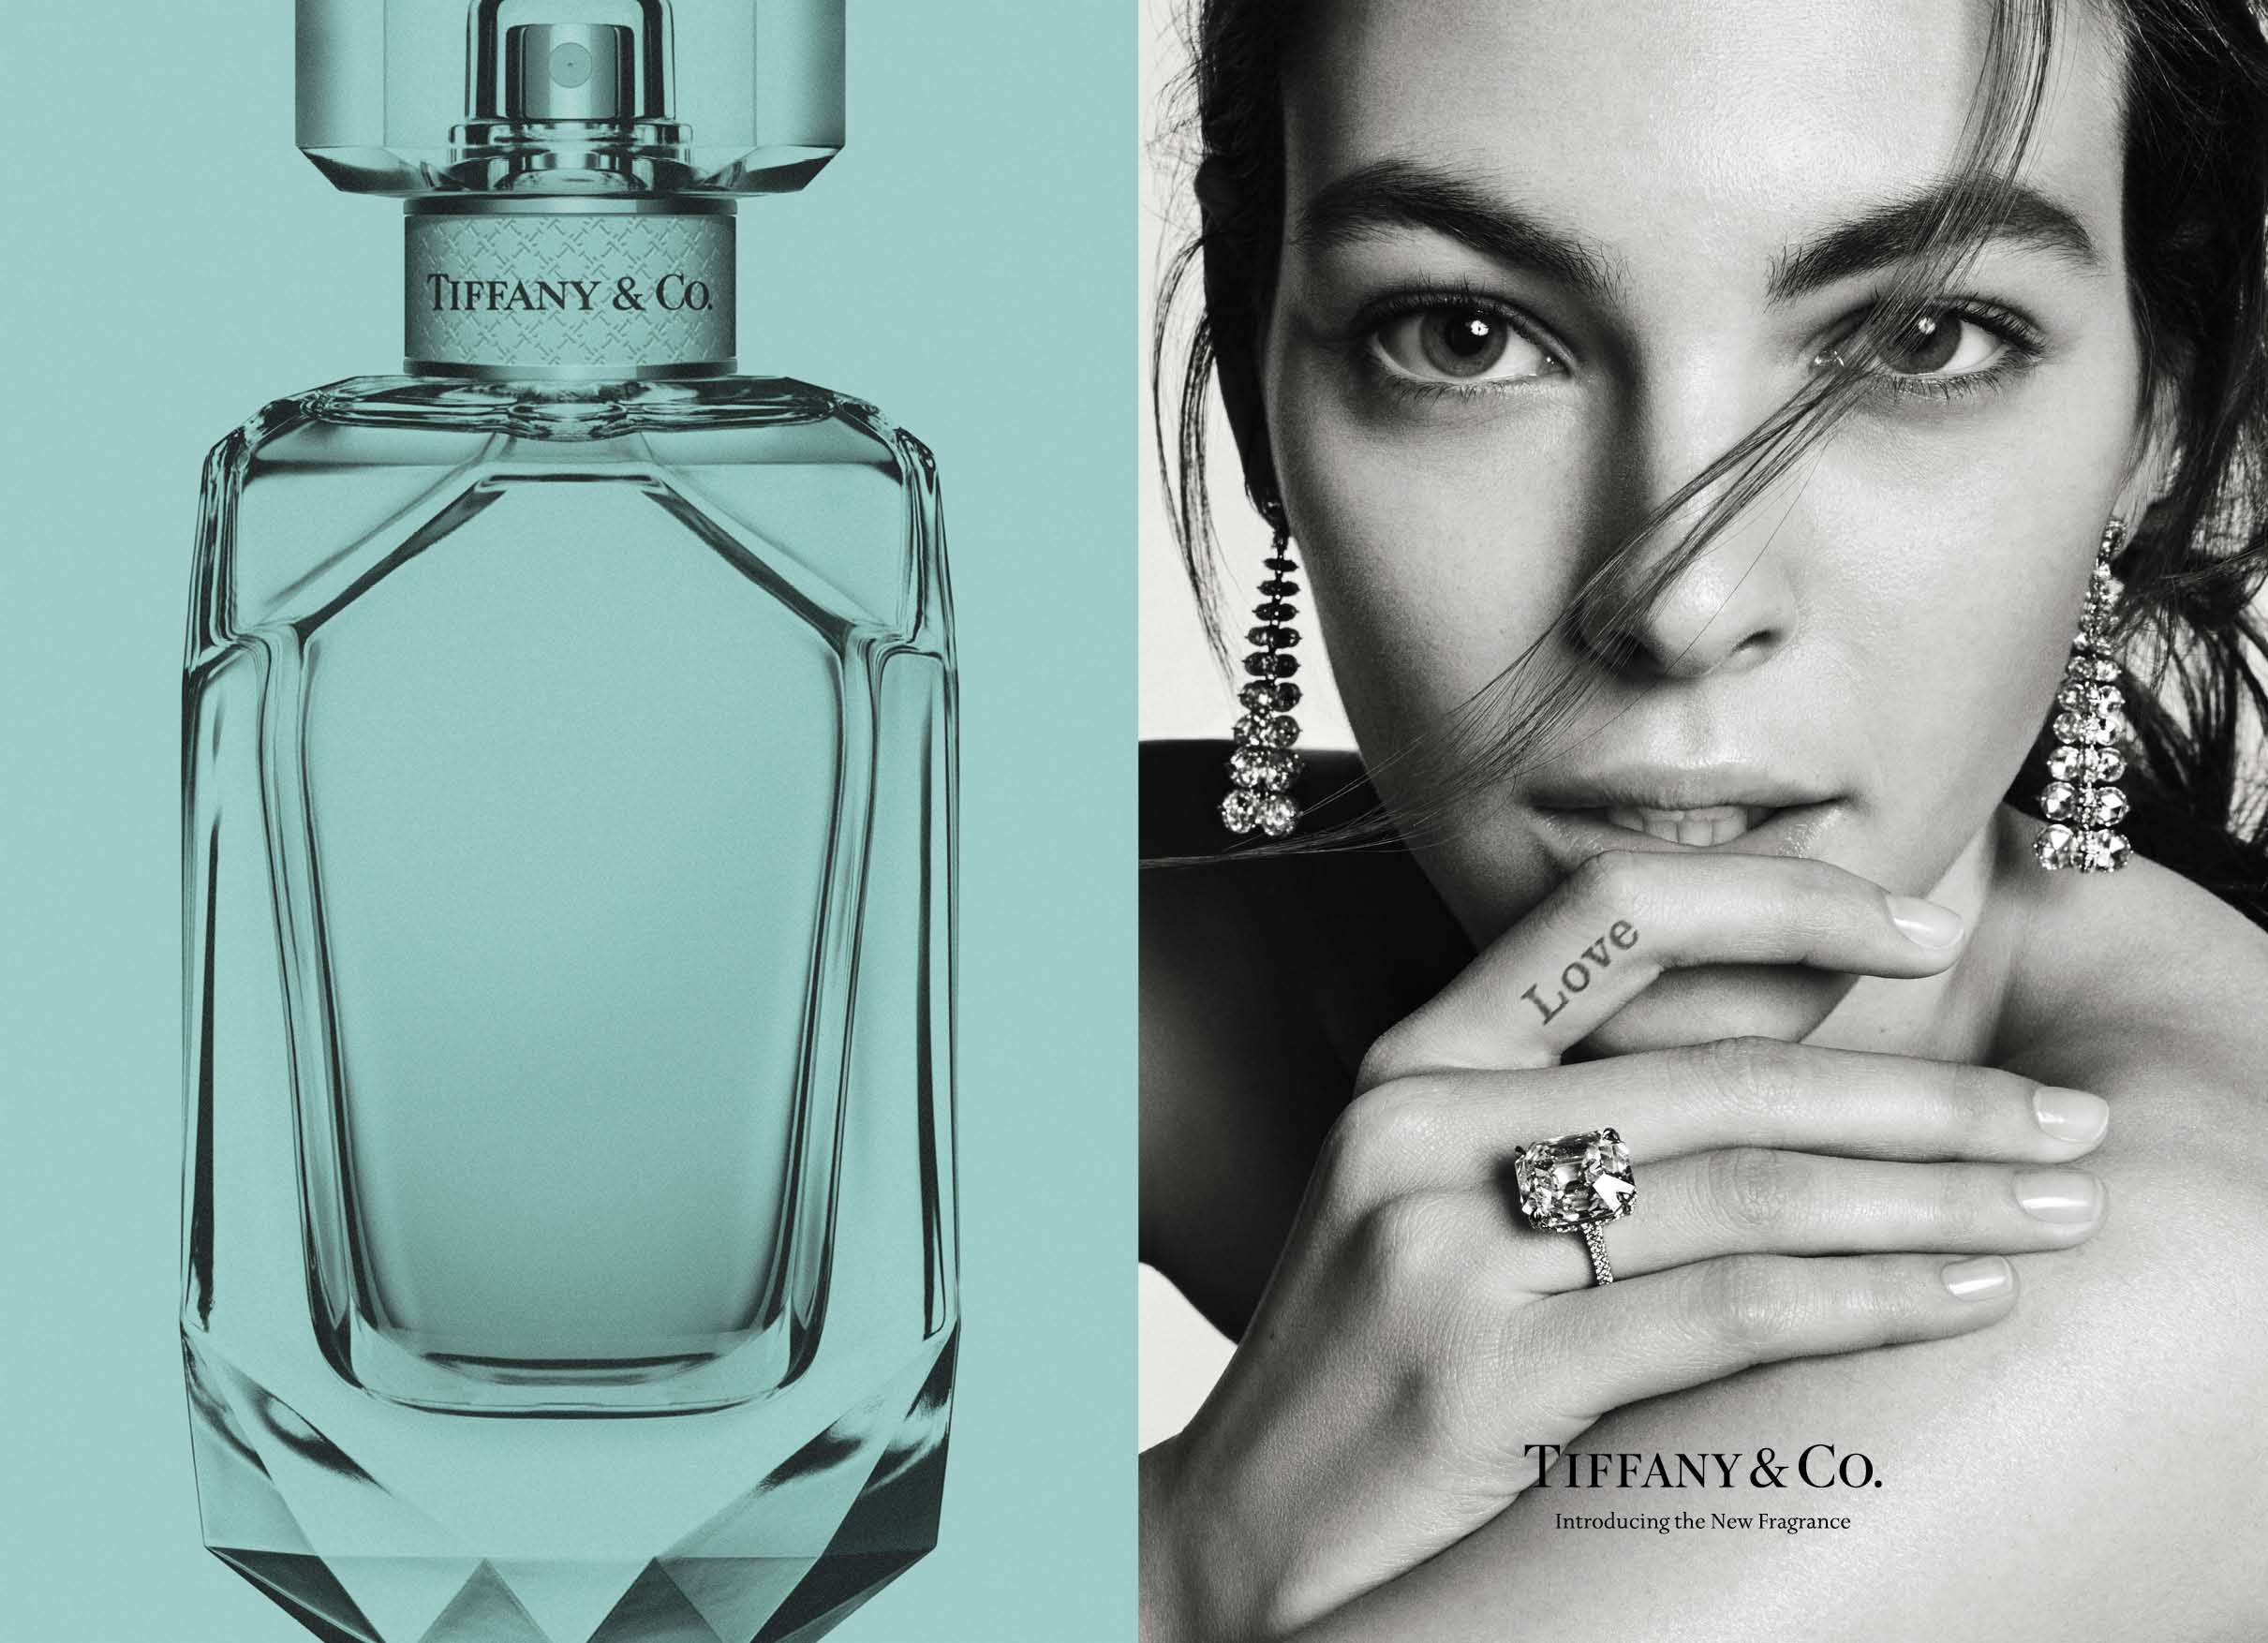 tiffany-co-parfum